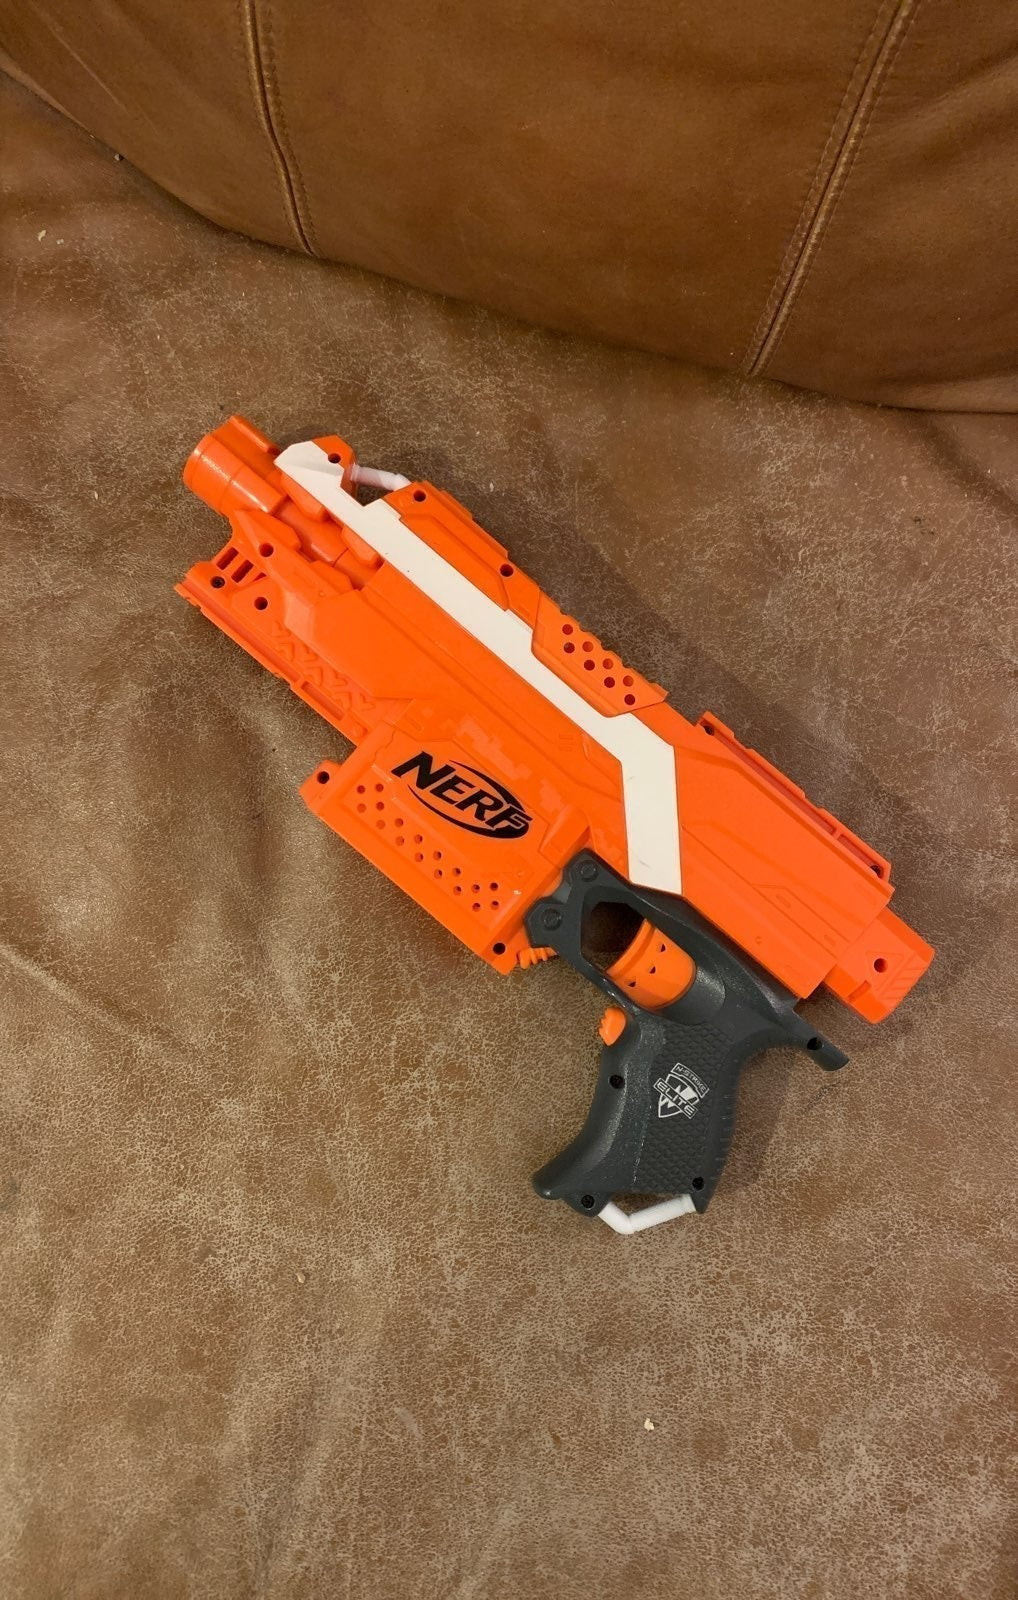 Nerf stryfe for sale. Excellent conditio